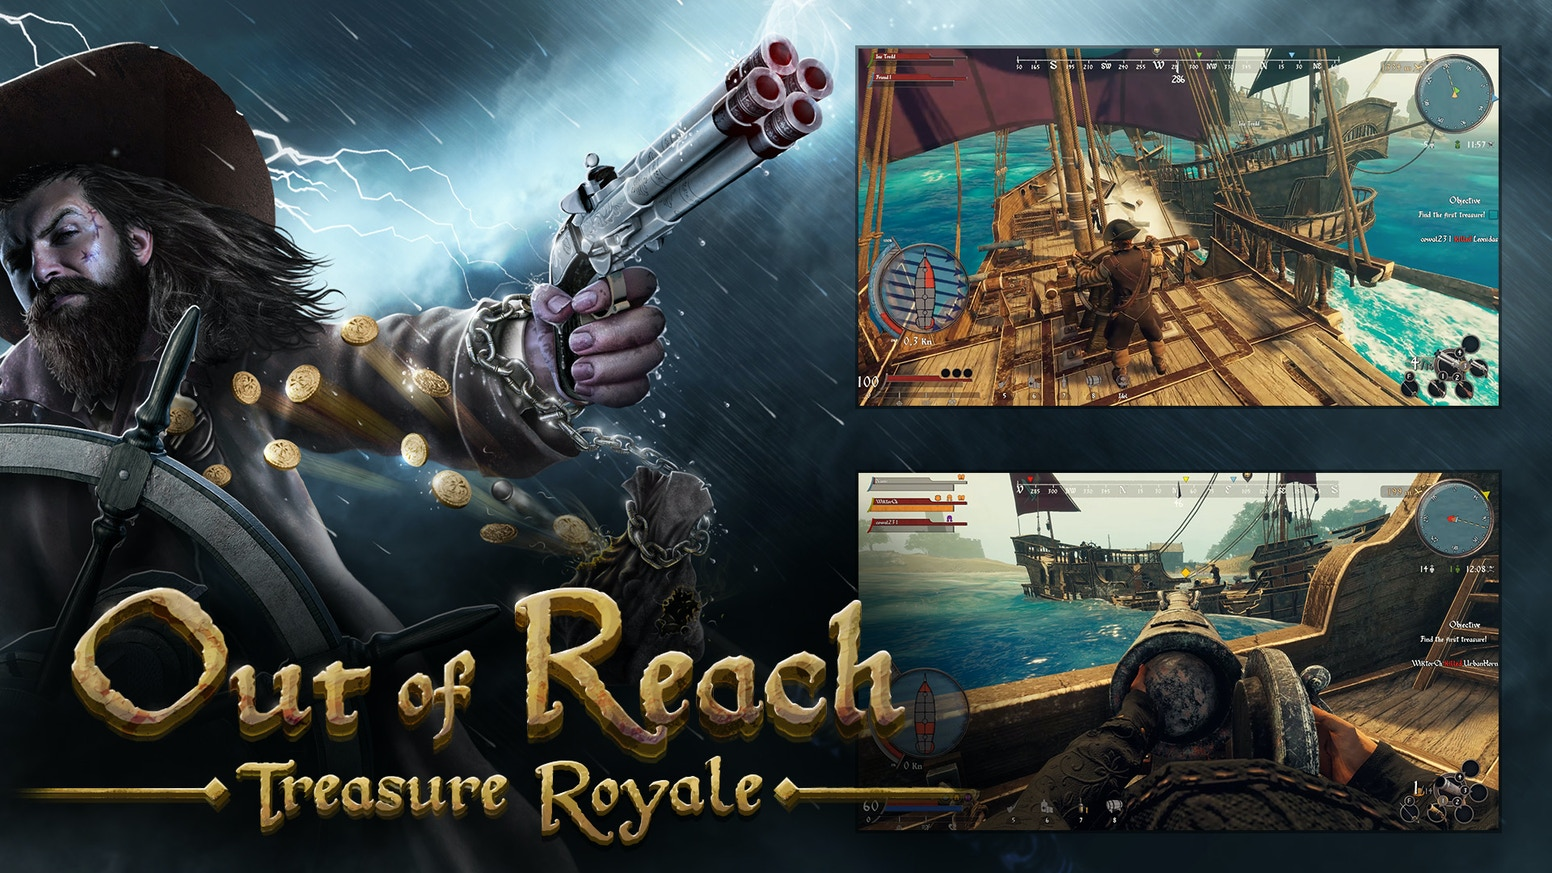 A Battle Royale game set in the Golden Age of Piracy, full of new mechanics, naval battles and gameplay tweaks. Find us on Steam!